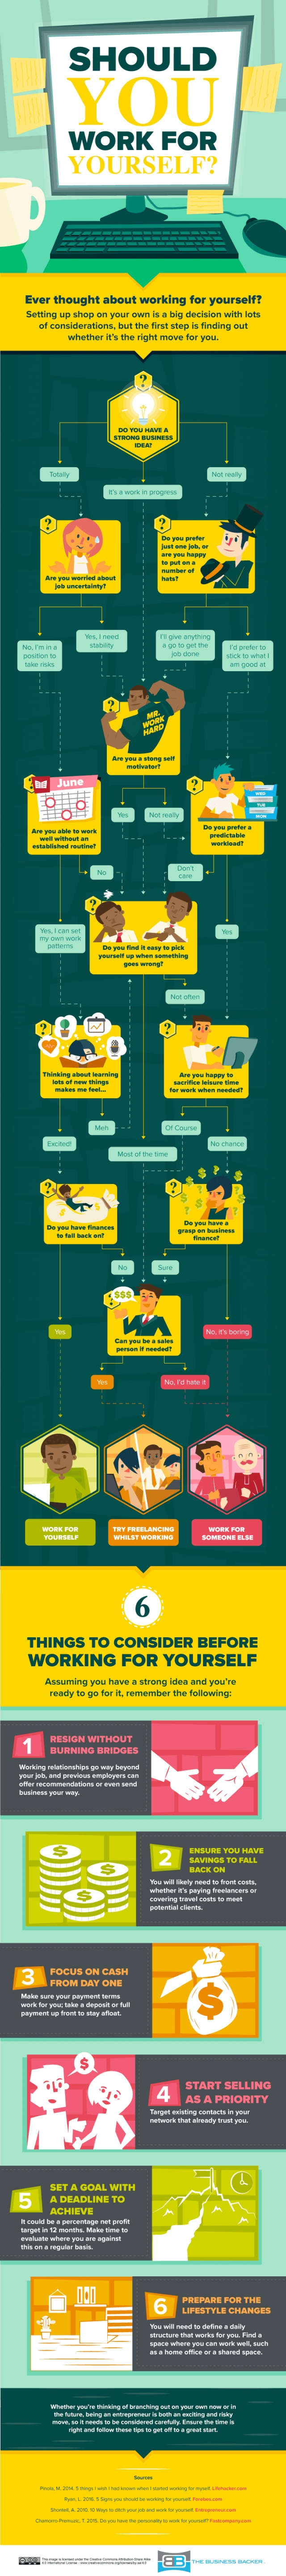 should-you-work-for-yourself-this-infographic-will-help-you-decide